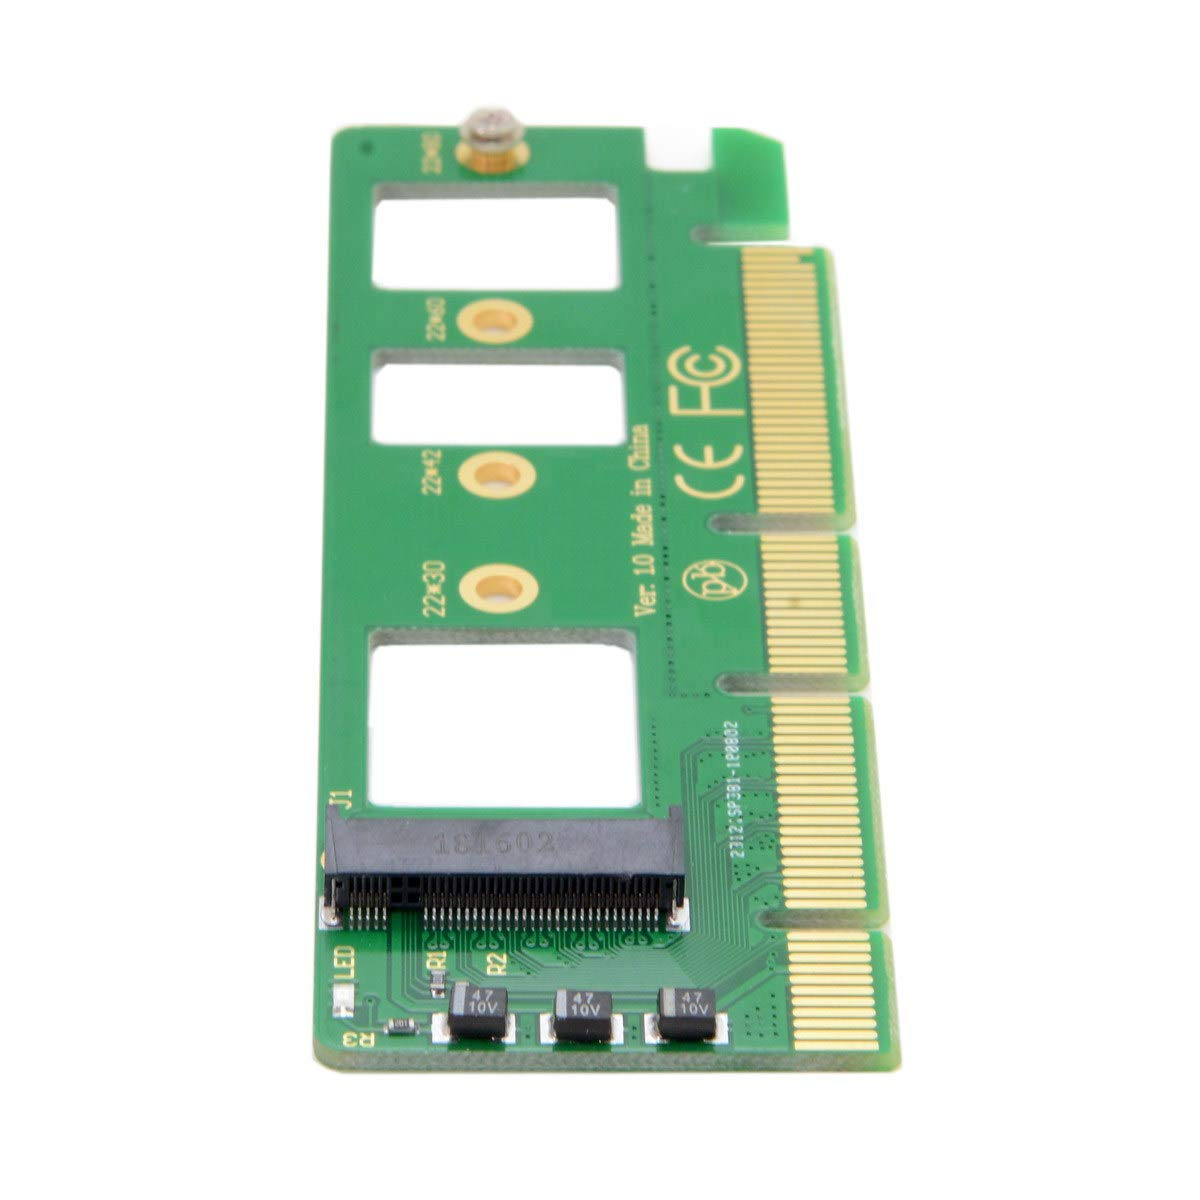 Cablecc NGFF M-Key NVME AHCI SSD to PCI-E 3.0 16x x4 Adapter for XP941 SM951 PM951 A110 m6e 960 EVO SSD by cablecc (Image #1)